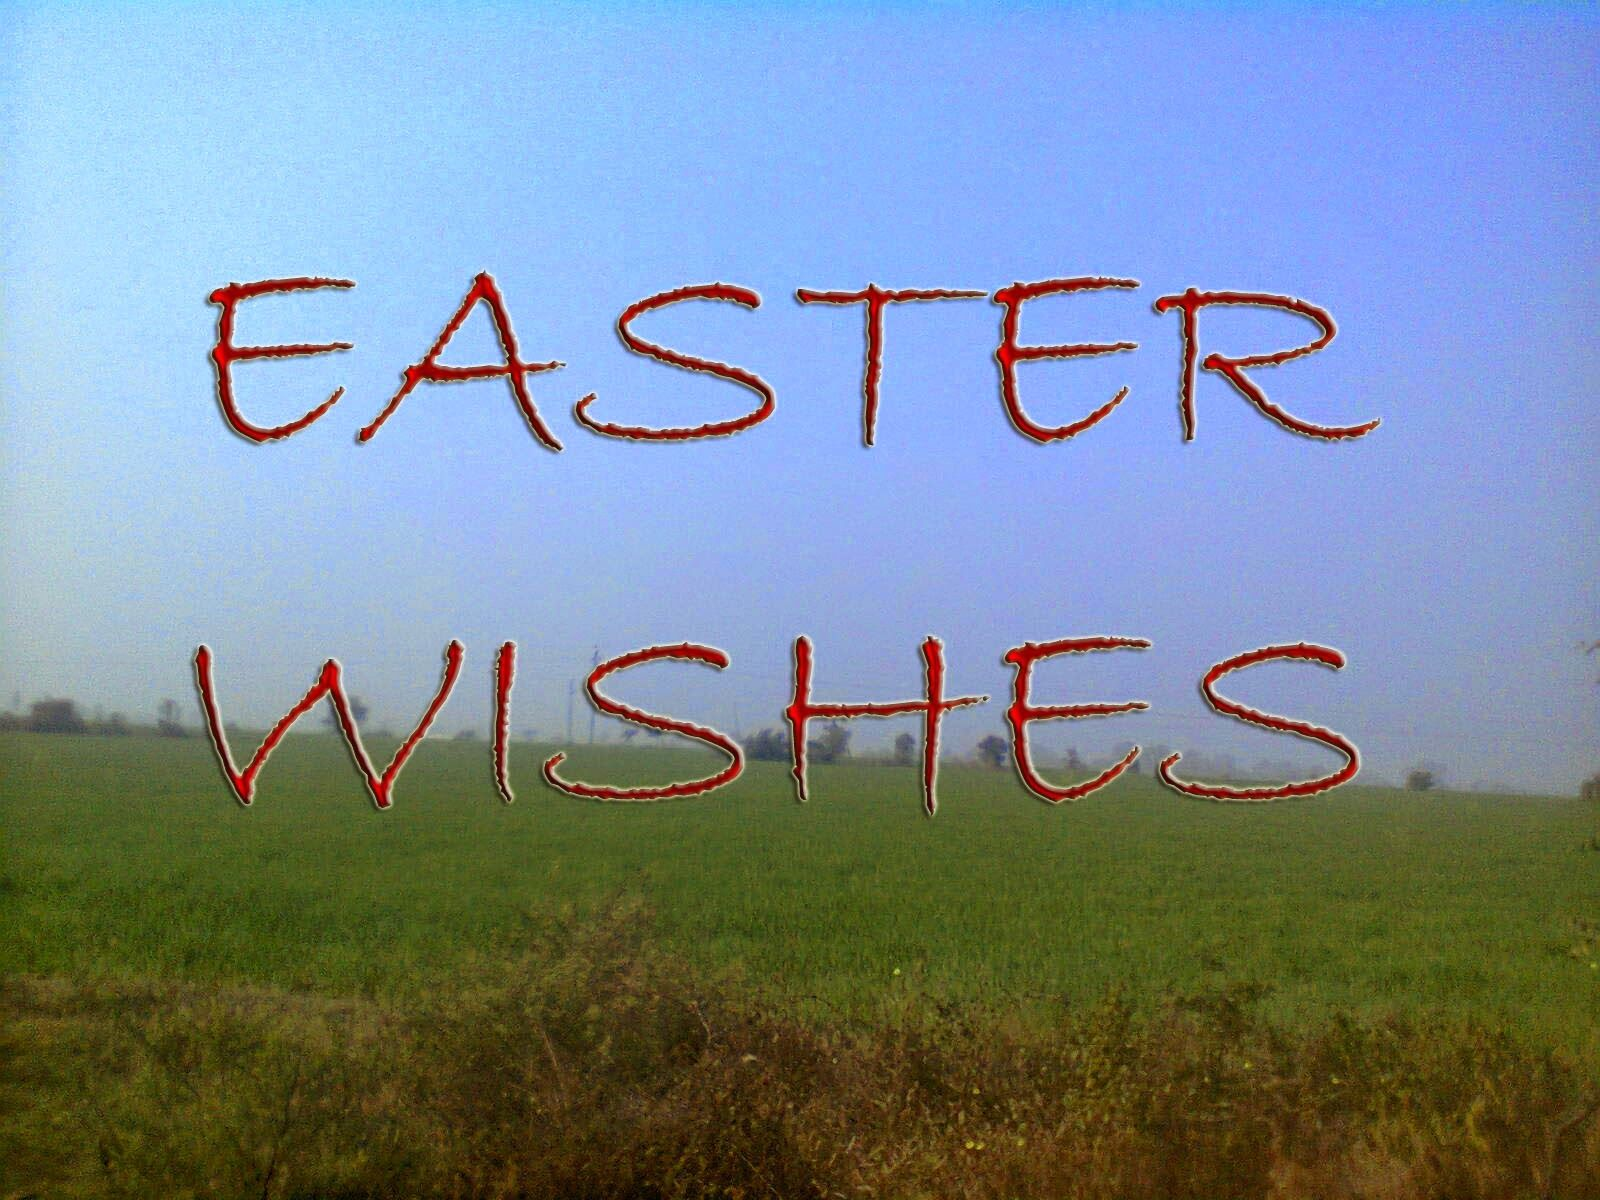 Mobile Funny Sms Easter Wishes Easter Sms Easter Easter Wishes